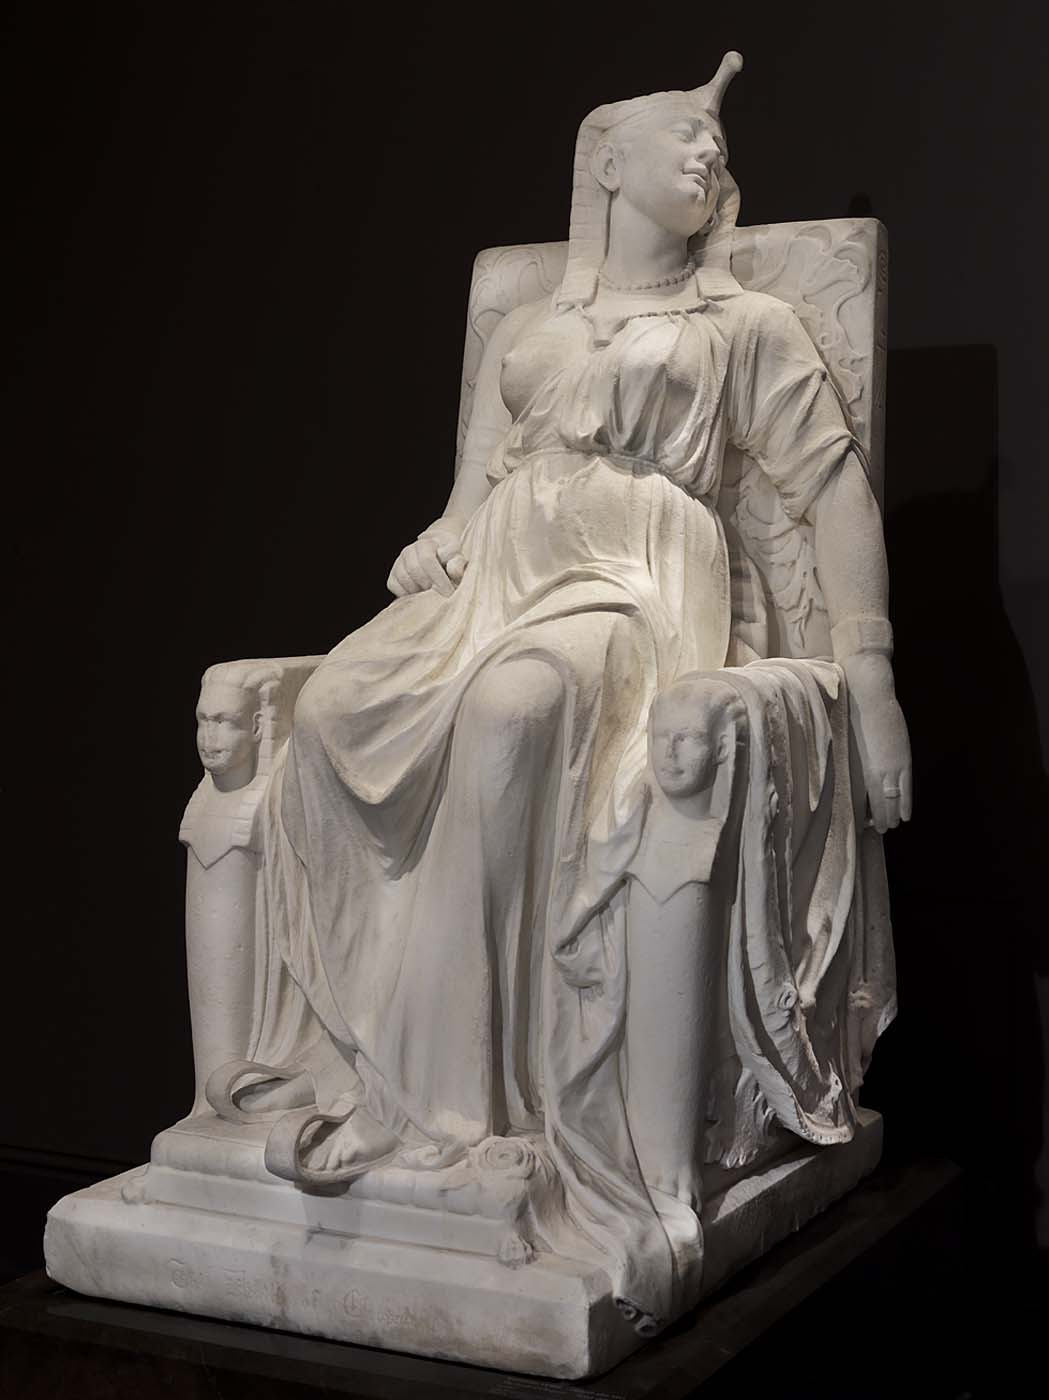 White marble sculpture of Cleopatra on throne